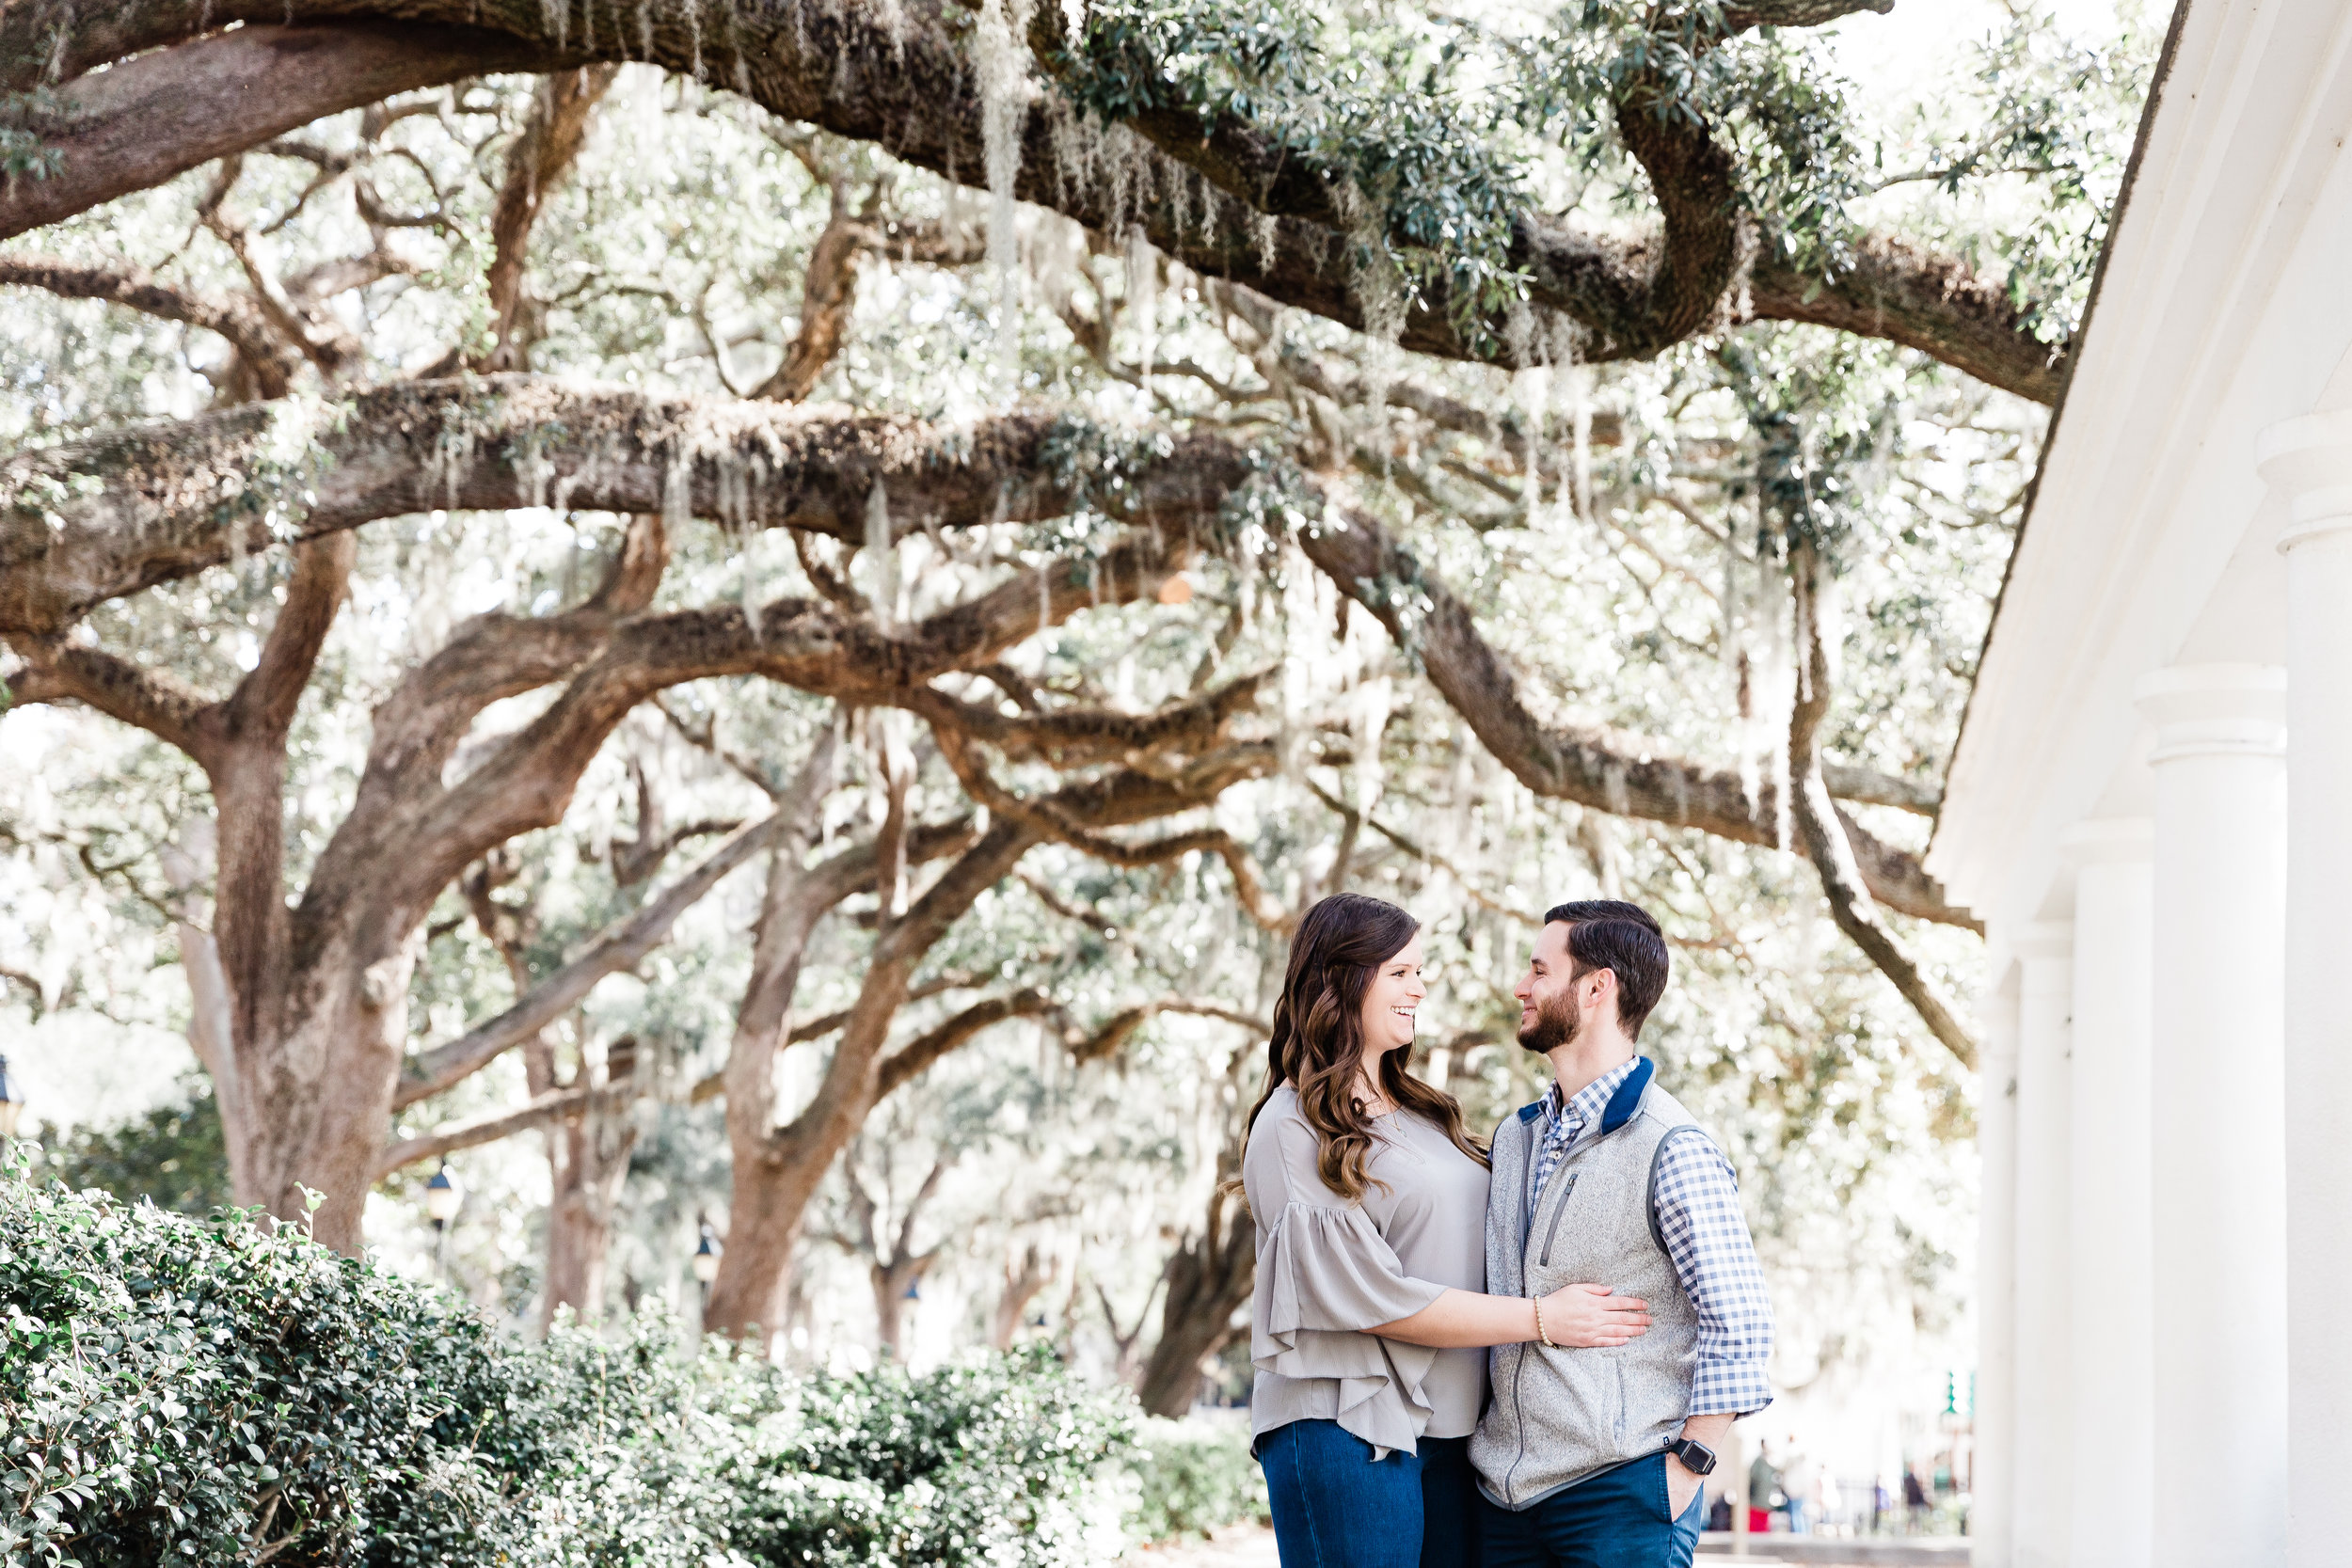 Valentines_mini_sessions_Savannah_Georgia_Photographer_Southern_Lens_Photography_Michelle_Weill_Family04.jpg